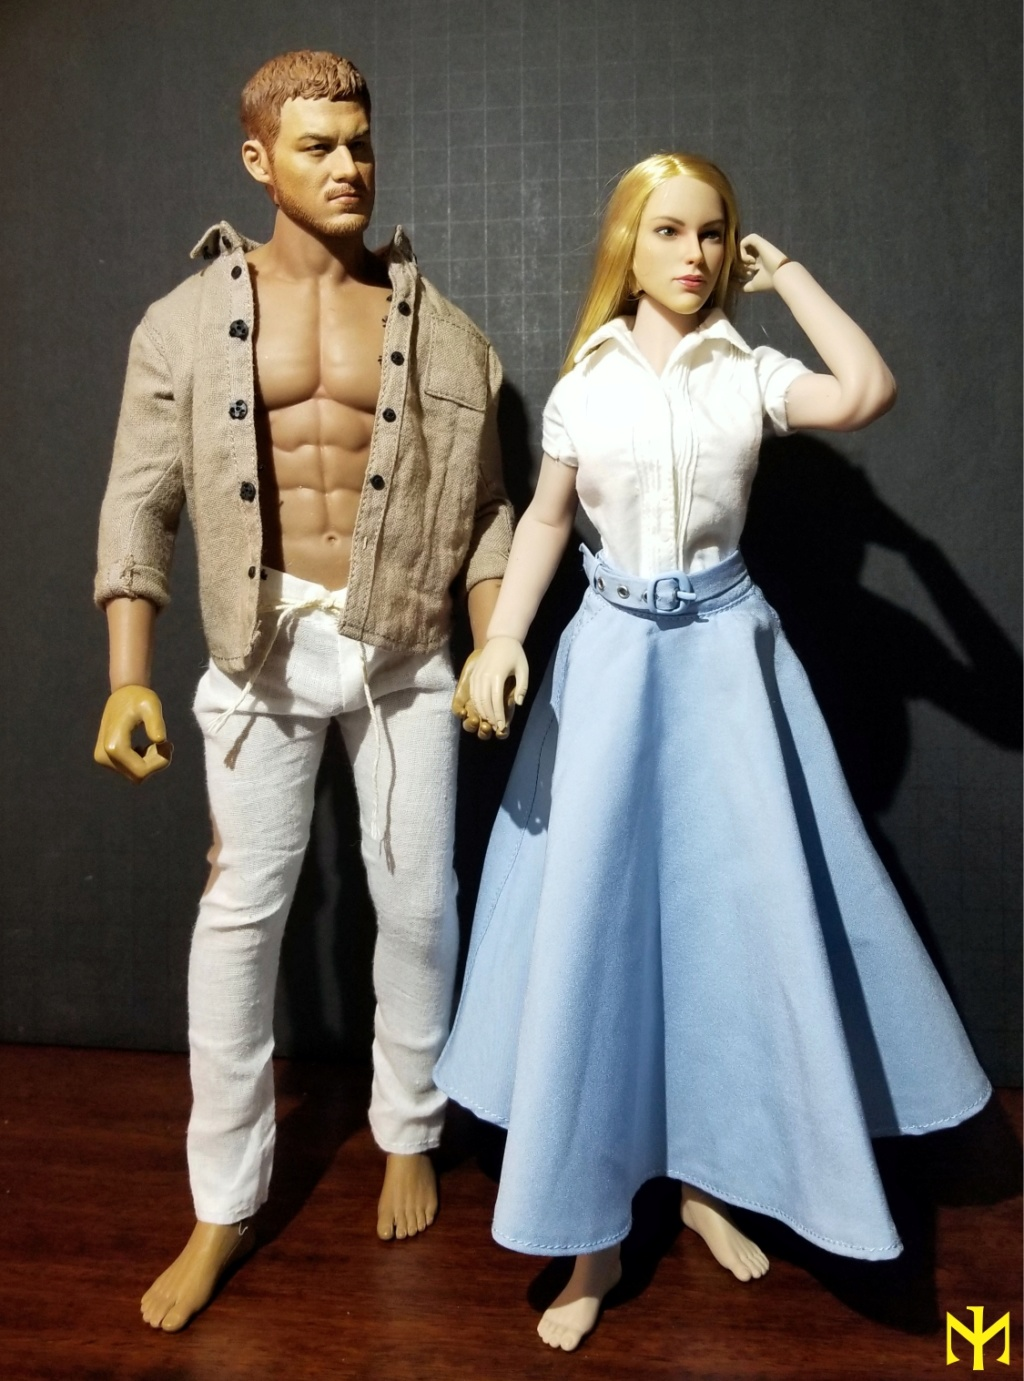 body - NEW PRODUCT: Verycool 1/6 Supermodel Head Sculpt + Female Body Set (2 versions) Vcfxa012